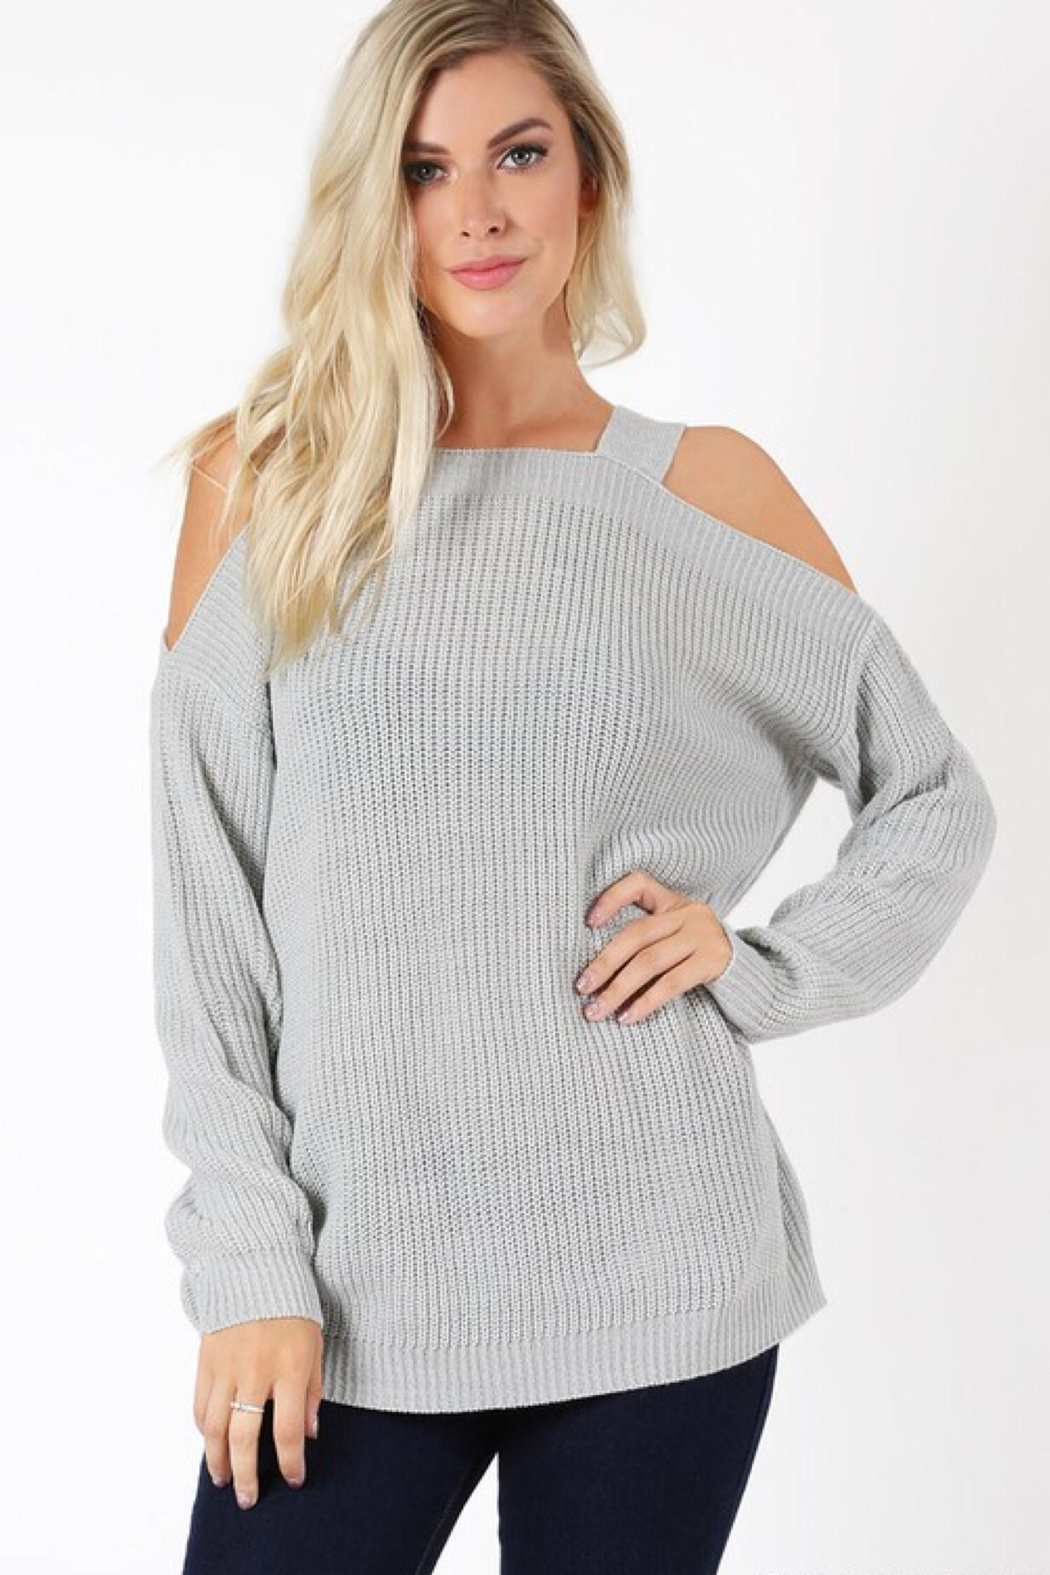 People Outfitter Light Grey Tunic Sweater - Main Image